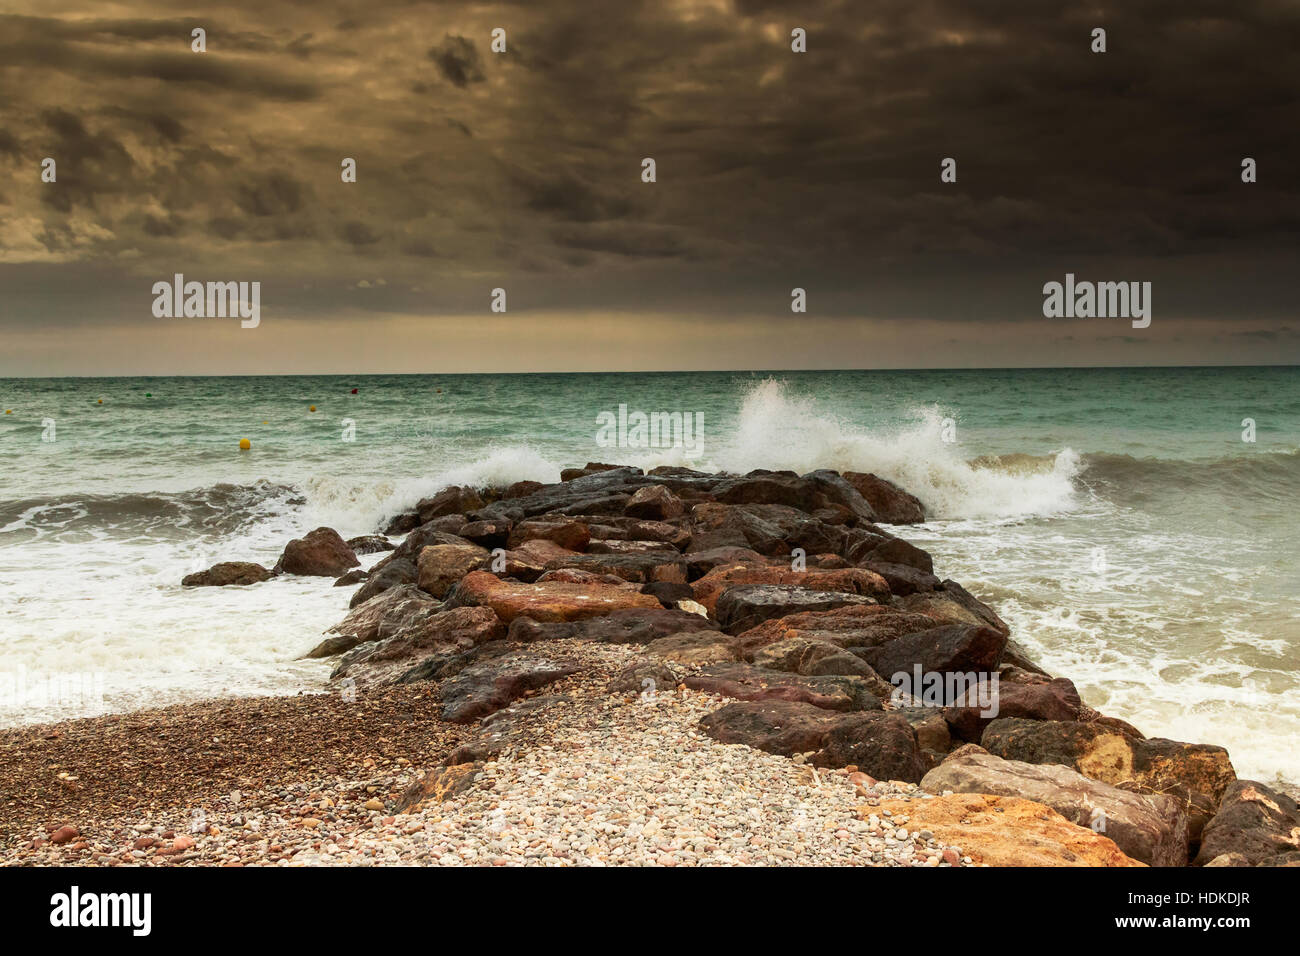 Storm over breakwaters of the beach. Horizontal image. - Stock Image